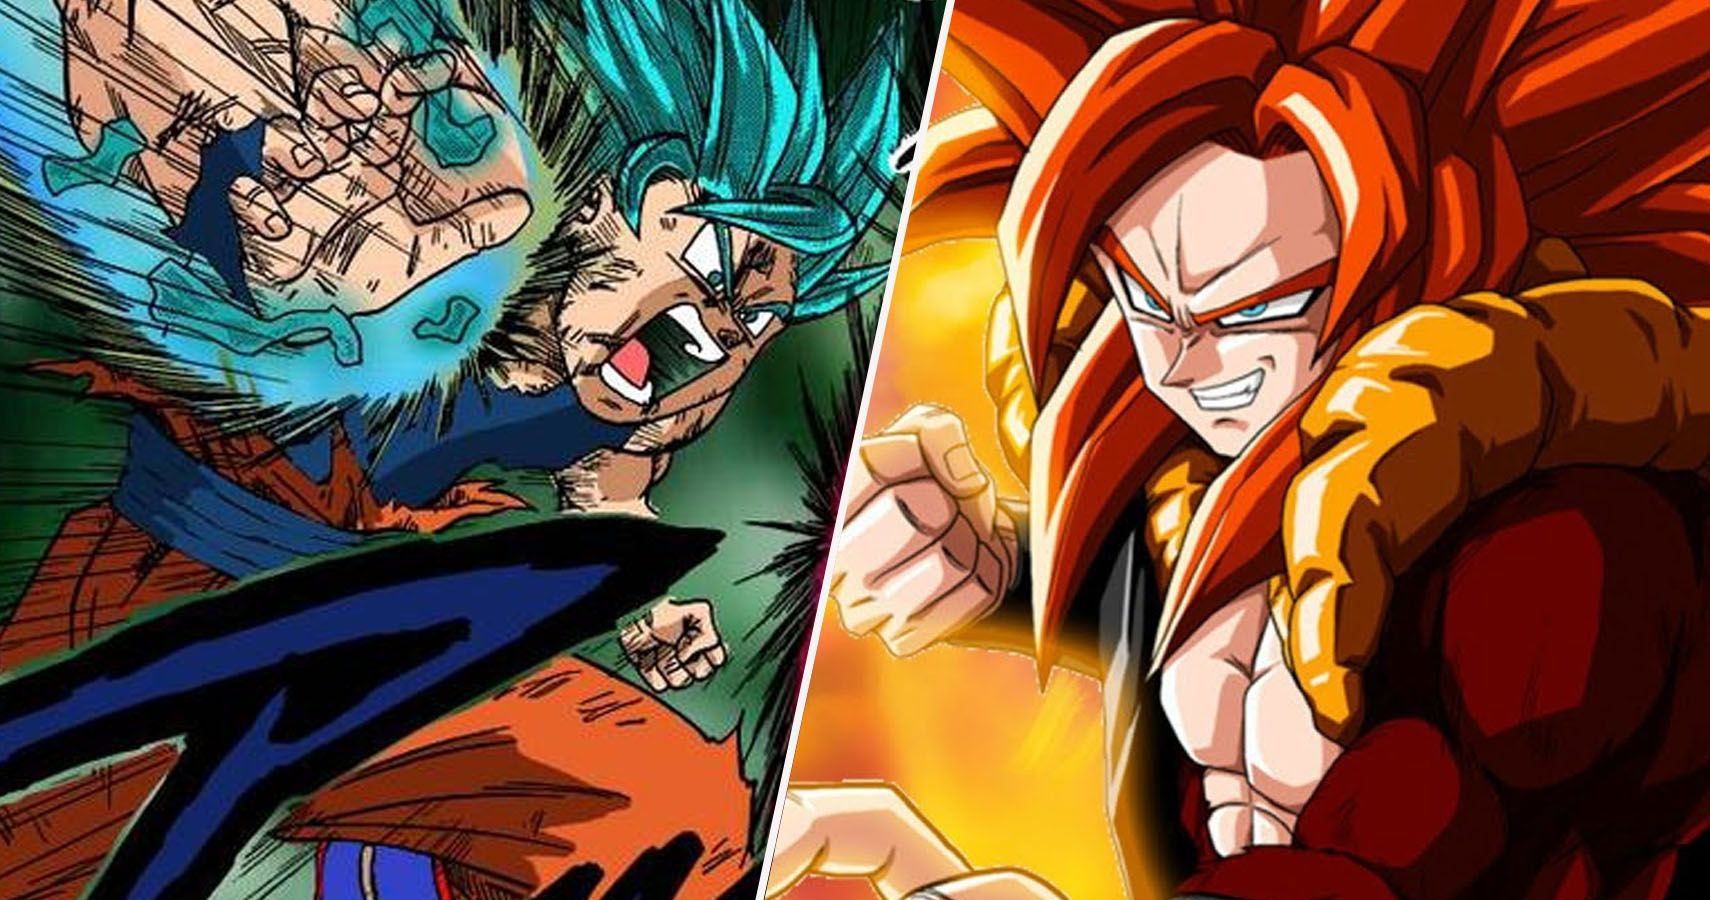 Dragon Ball Final Stand Tournament Of Power Group Roblox Dragon Ball These Are The Most Powerful Super Saiyans